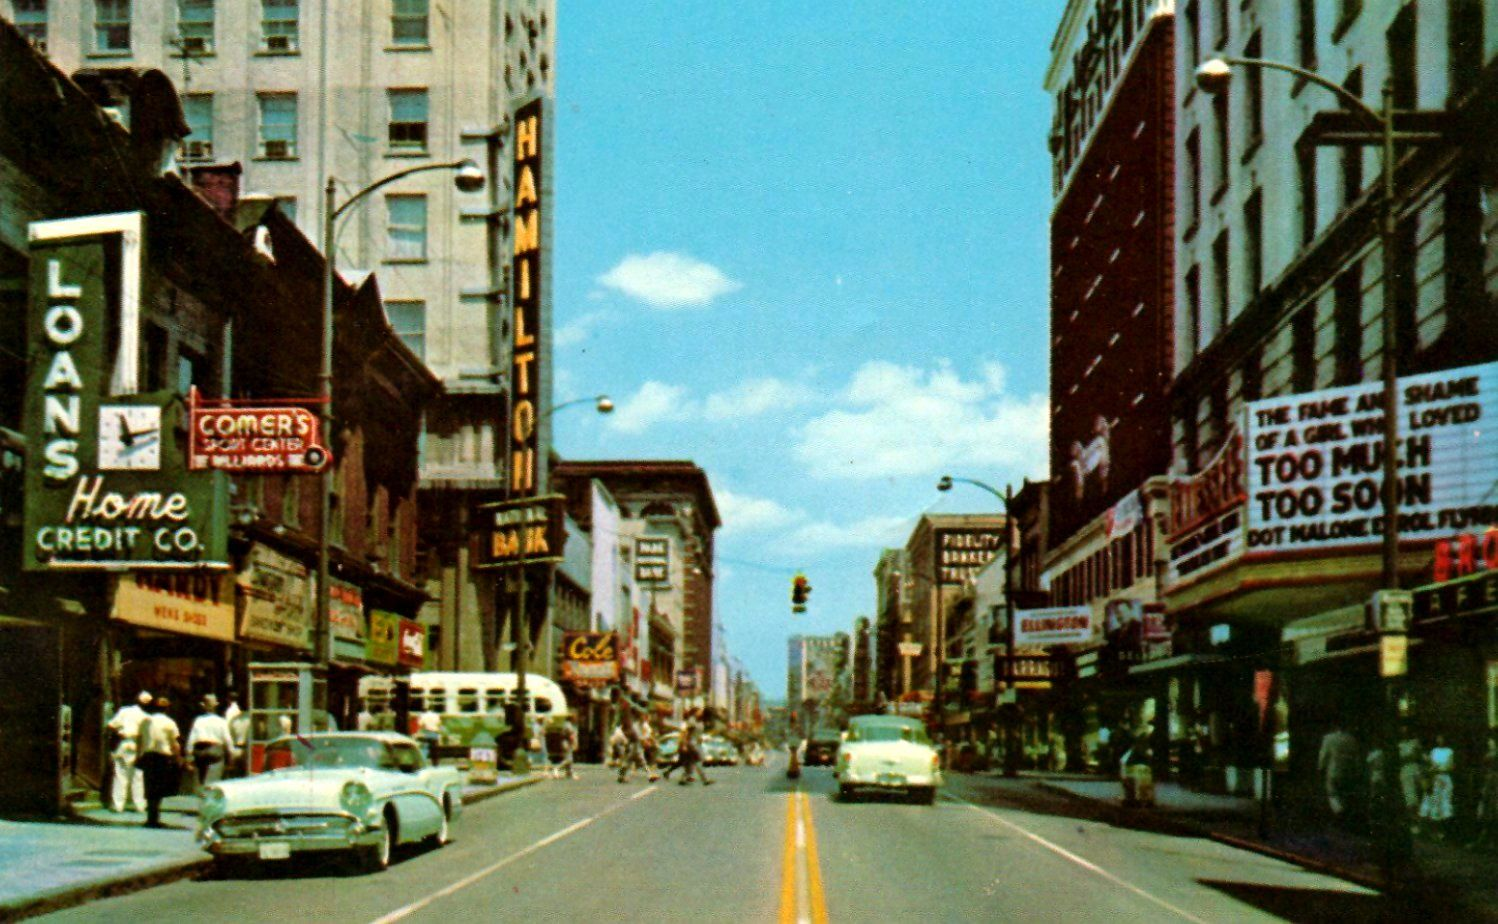 restaurants on gay street knoxville tn